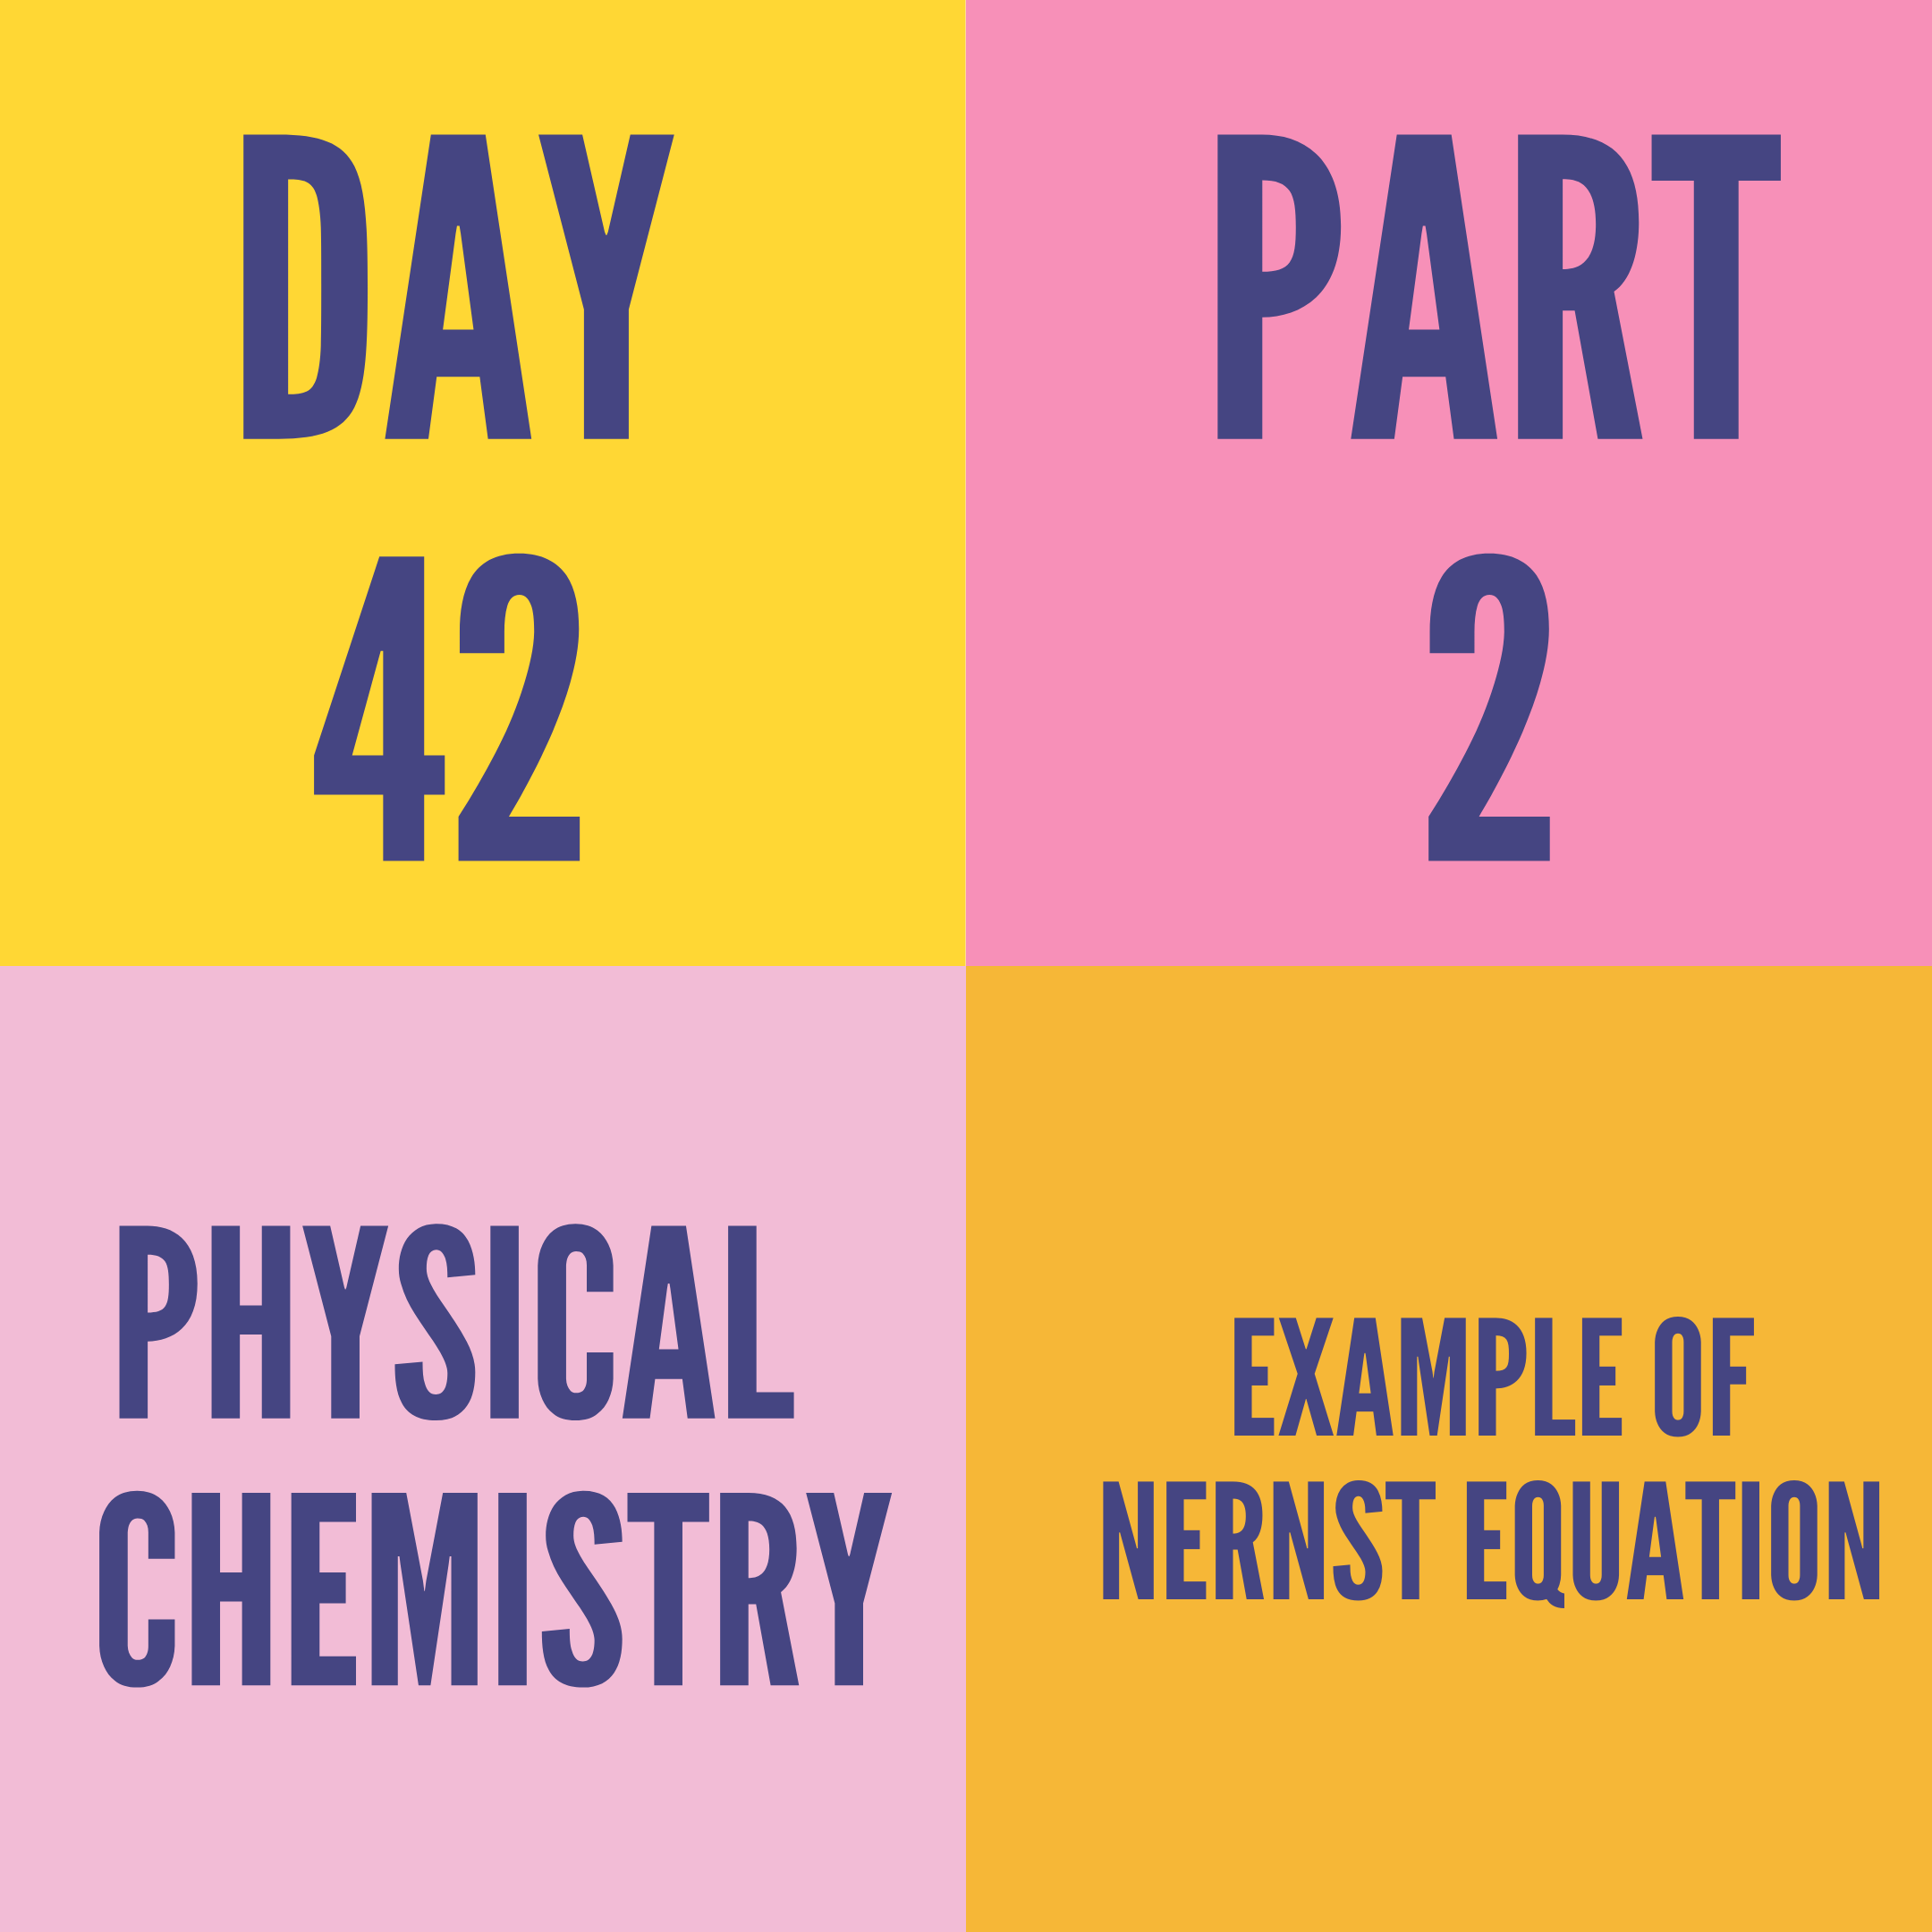 DAY-42 PART-2 EXAMPLE OF NERNST EQUATION